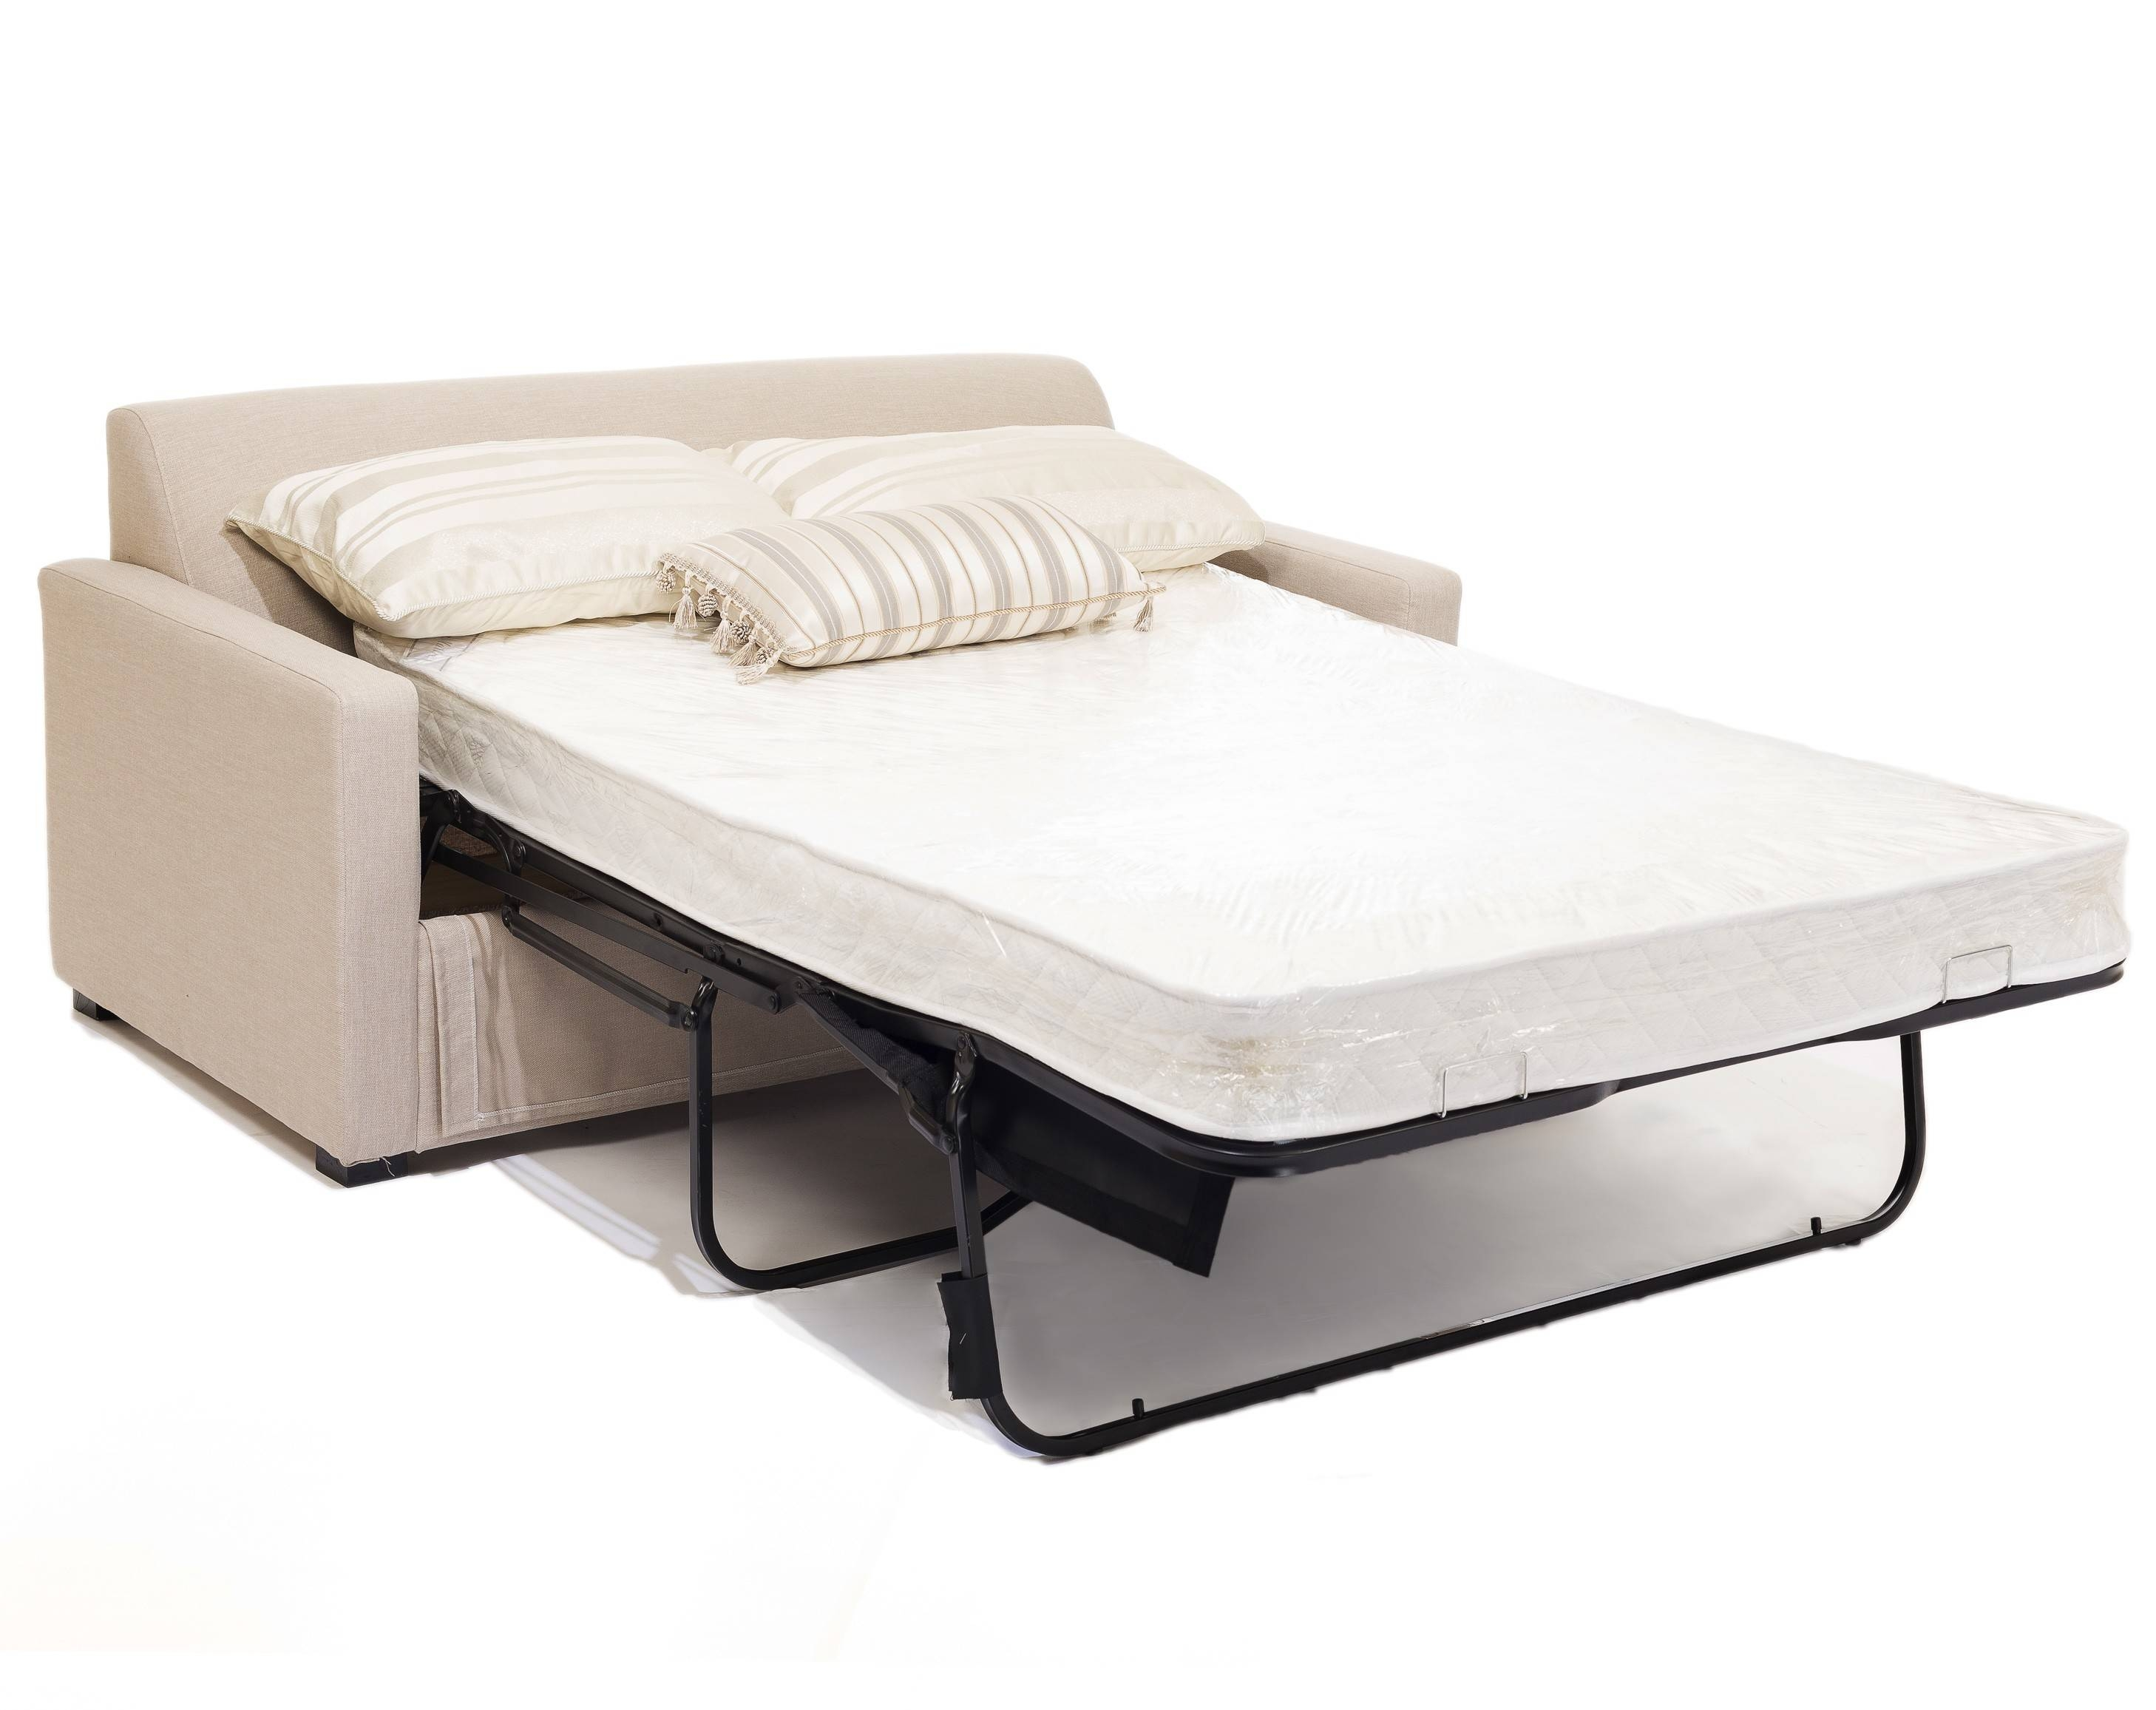 Bedding High Quality Double Sofa Bed Mattress Double Mattress With Regard To Sofa Beds With Mattress Support (View 1 of 15)